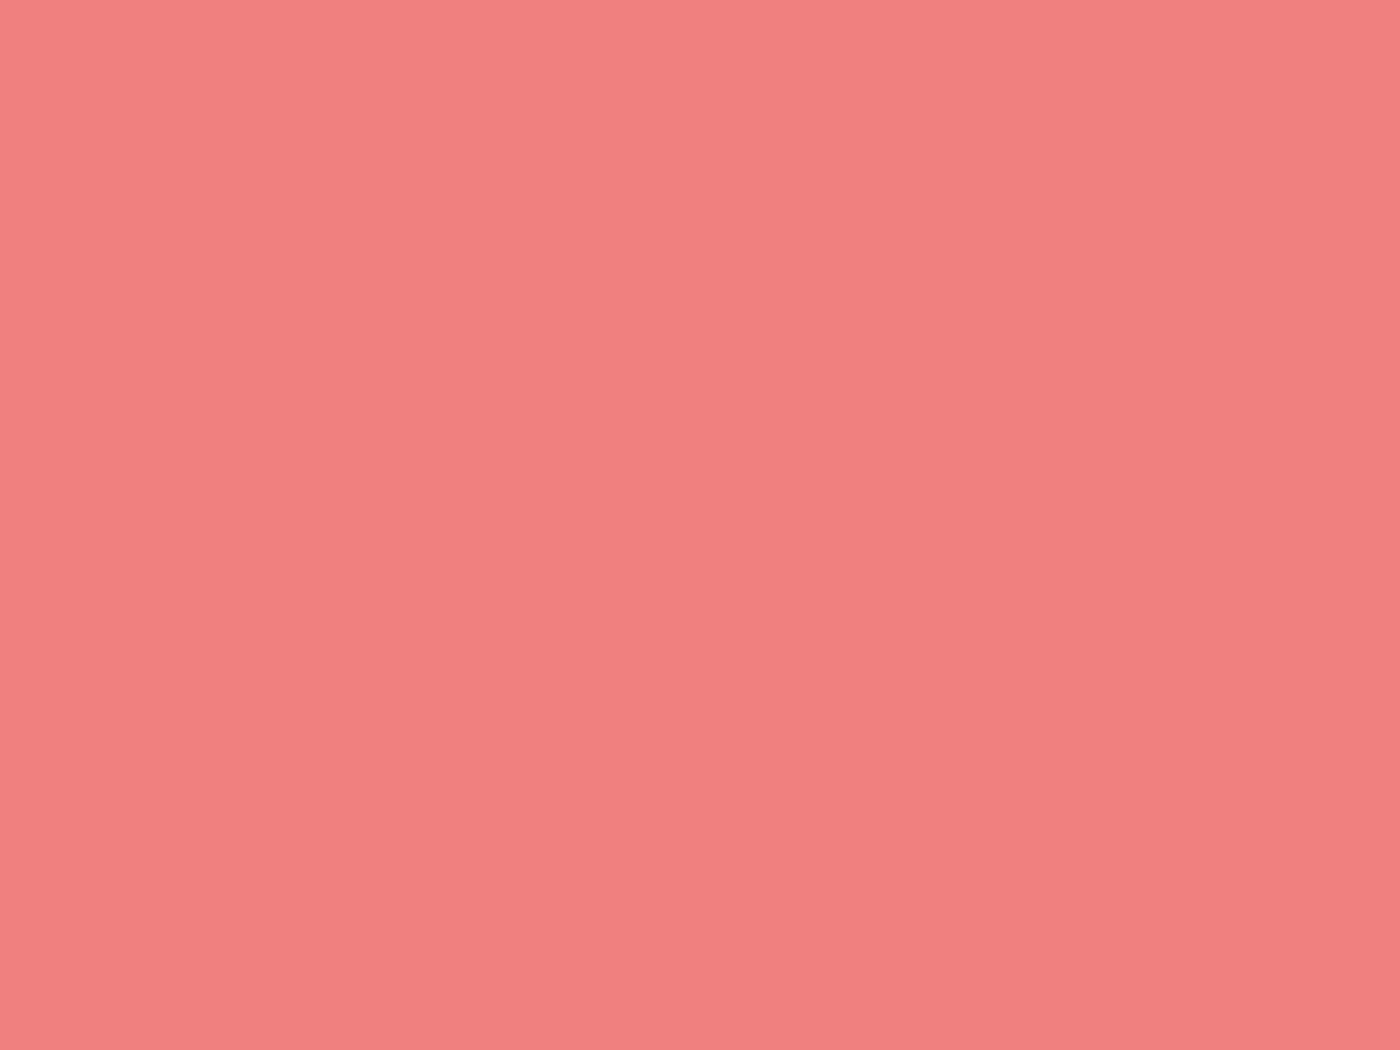 1400x1050 Light Coral Solid Color Background